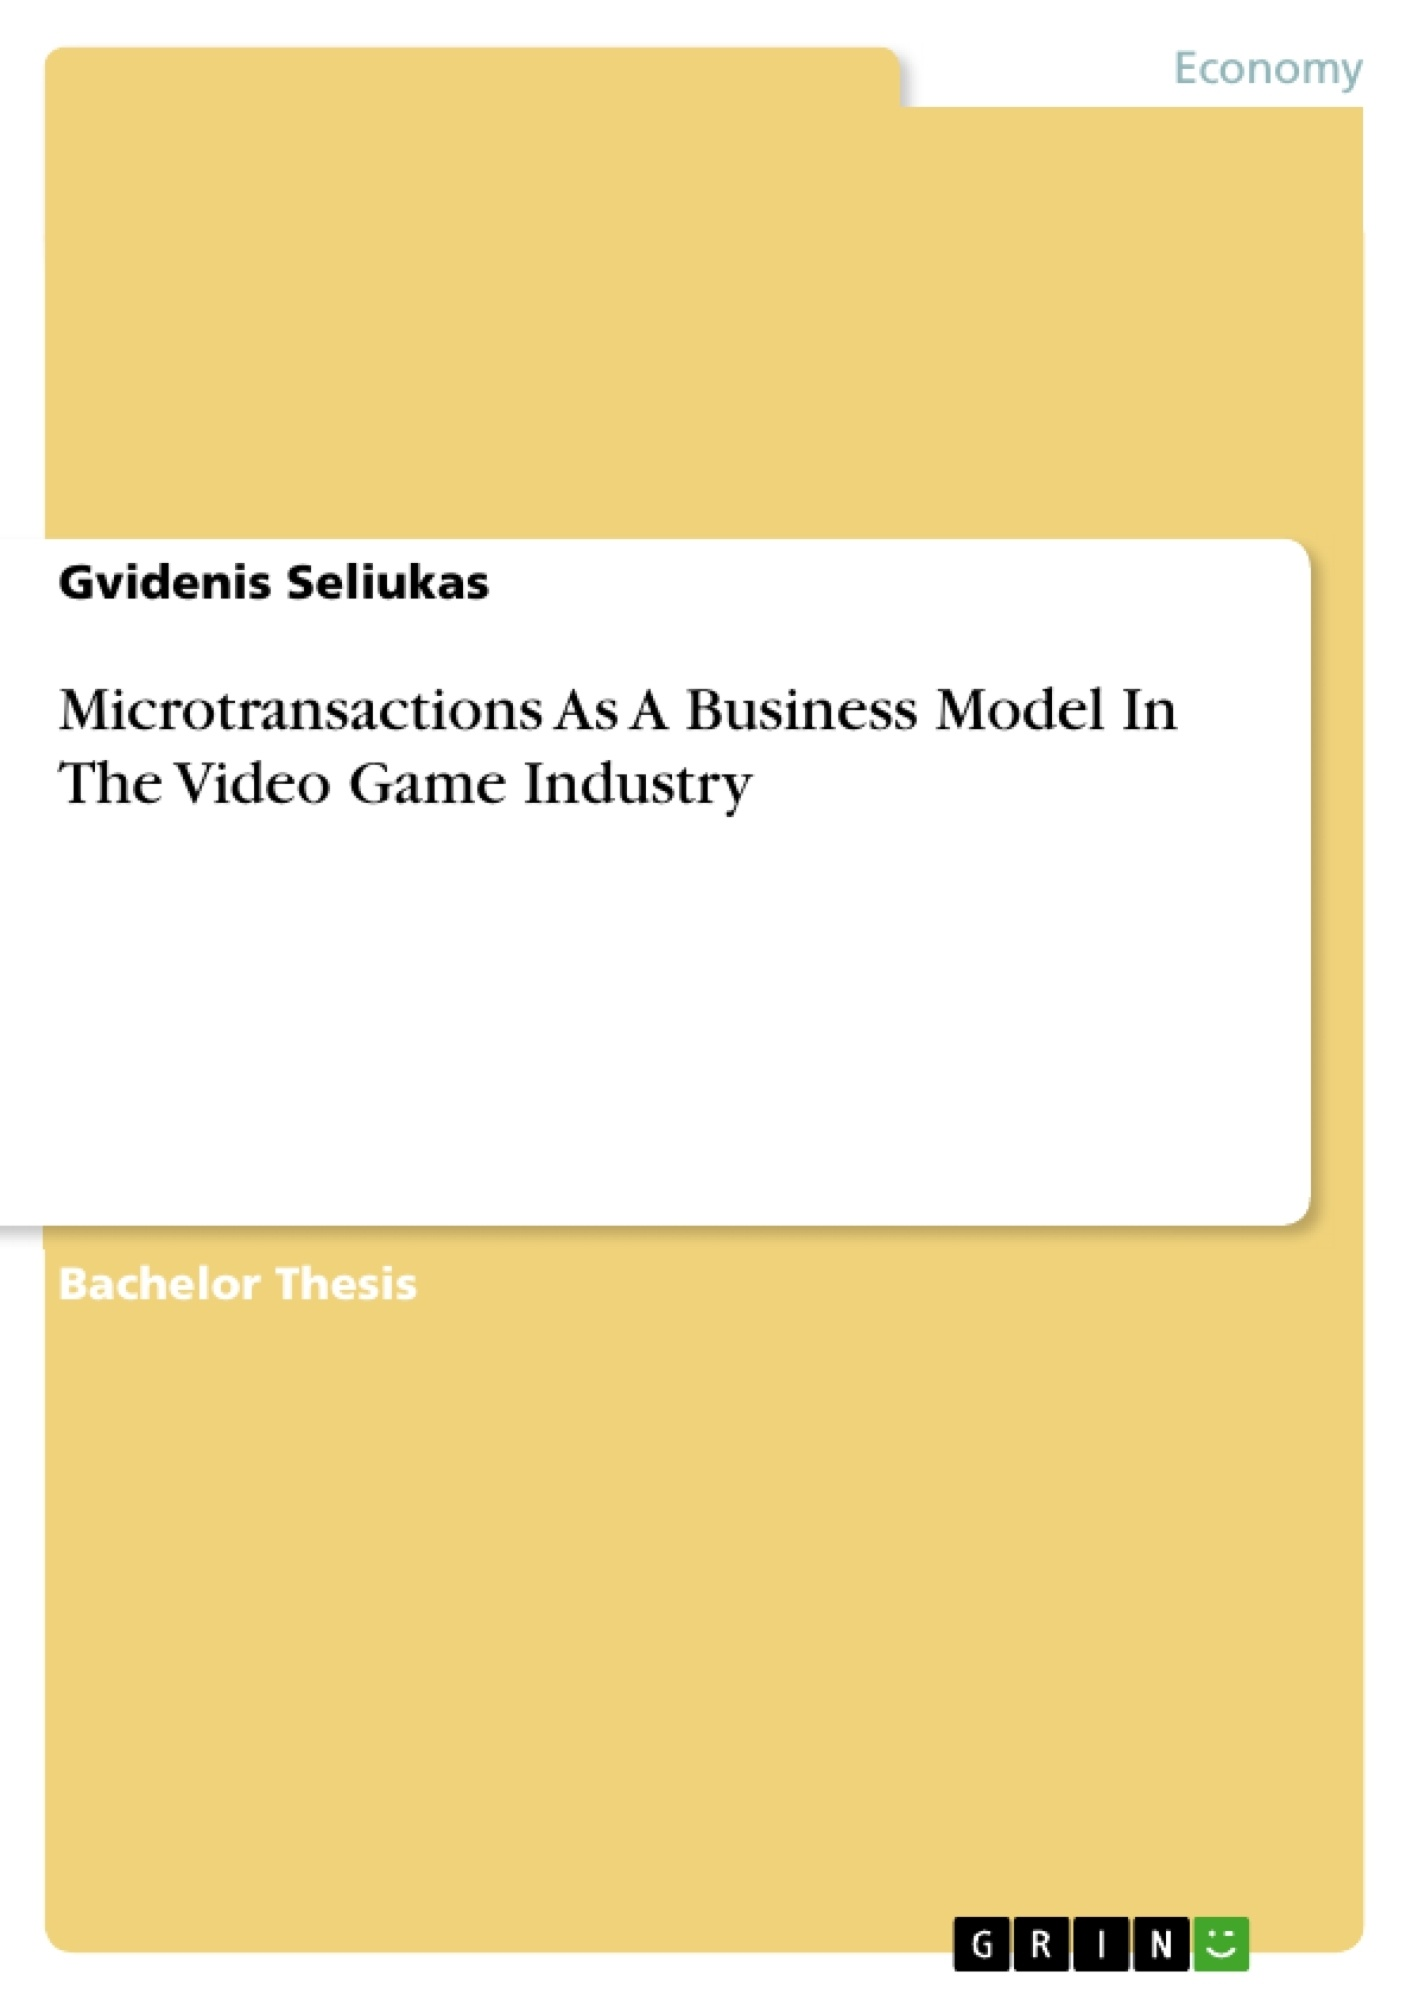 Title: Microtransactions As A Business Model In The Video Game Industry